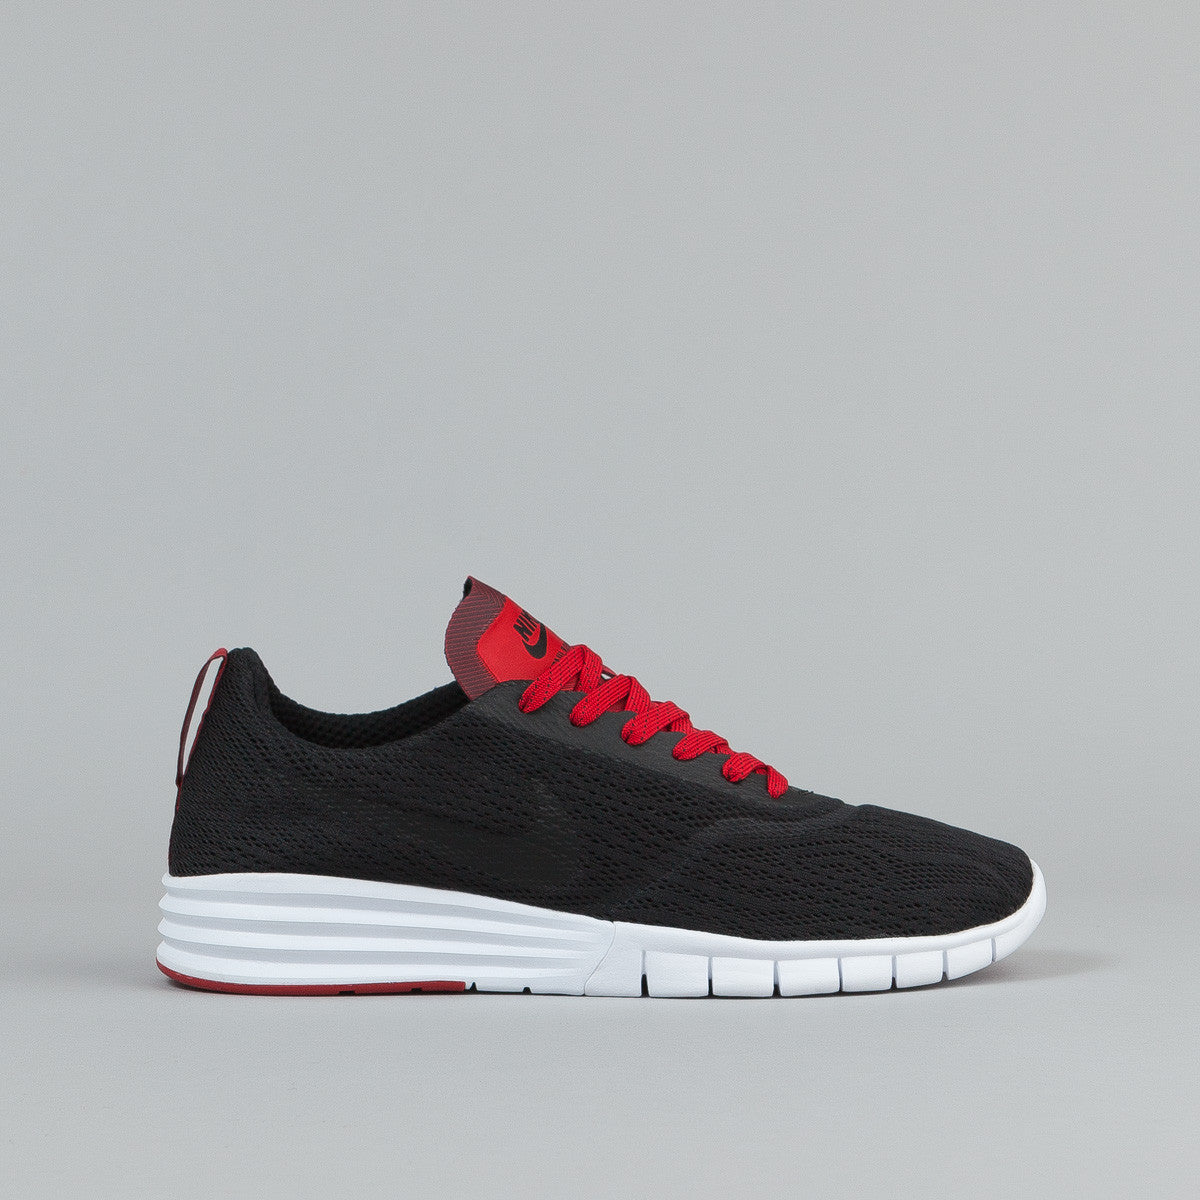 Nike SB Paul Rodriguez 9 R/R Shoes